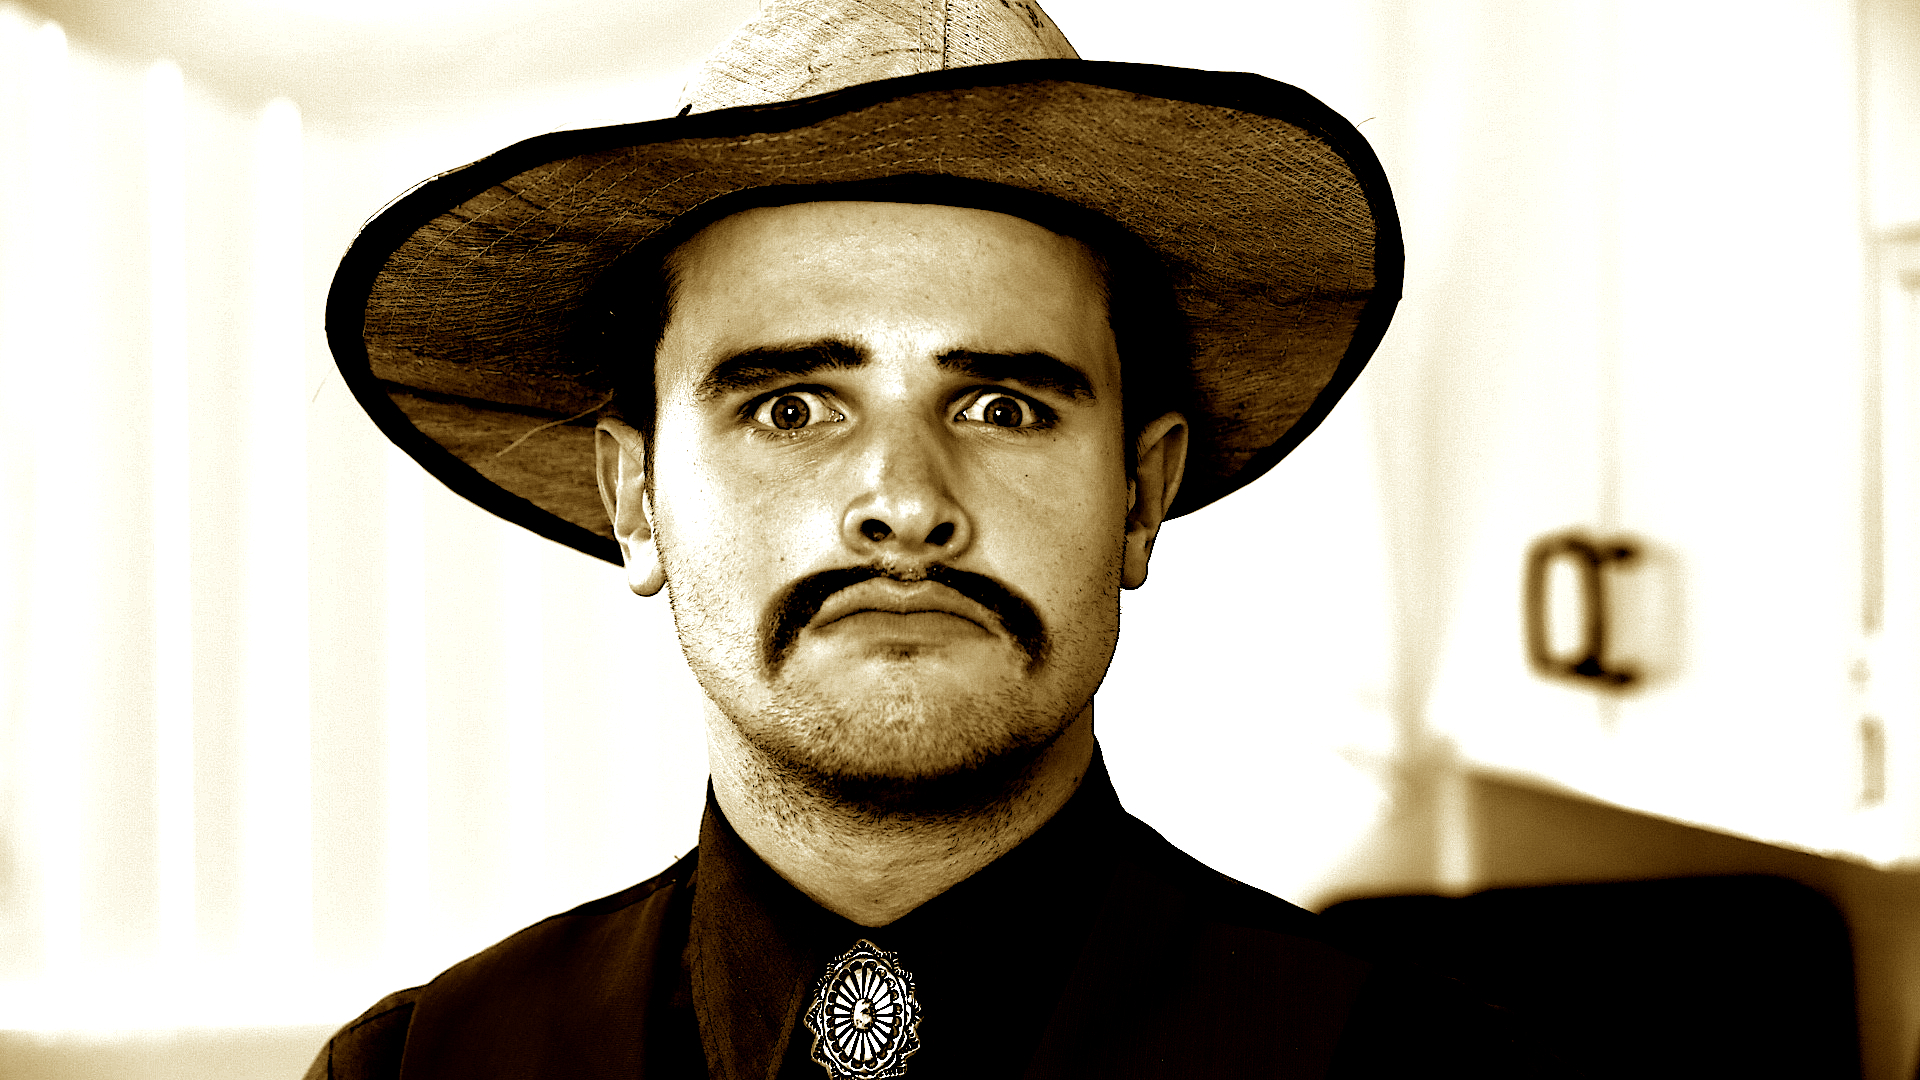 Mark weird close up cowboy.jpg